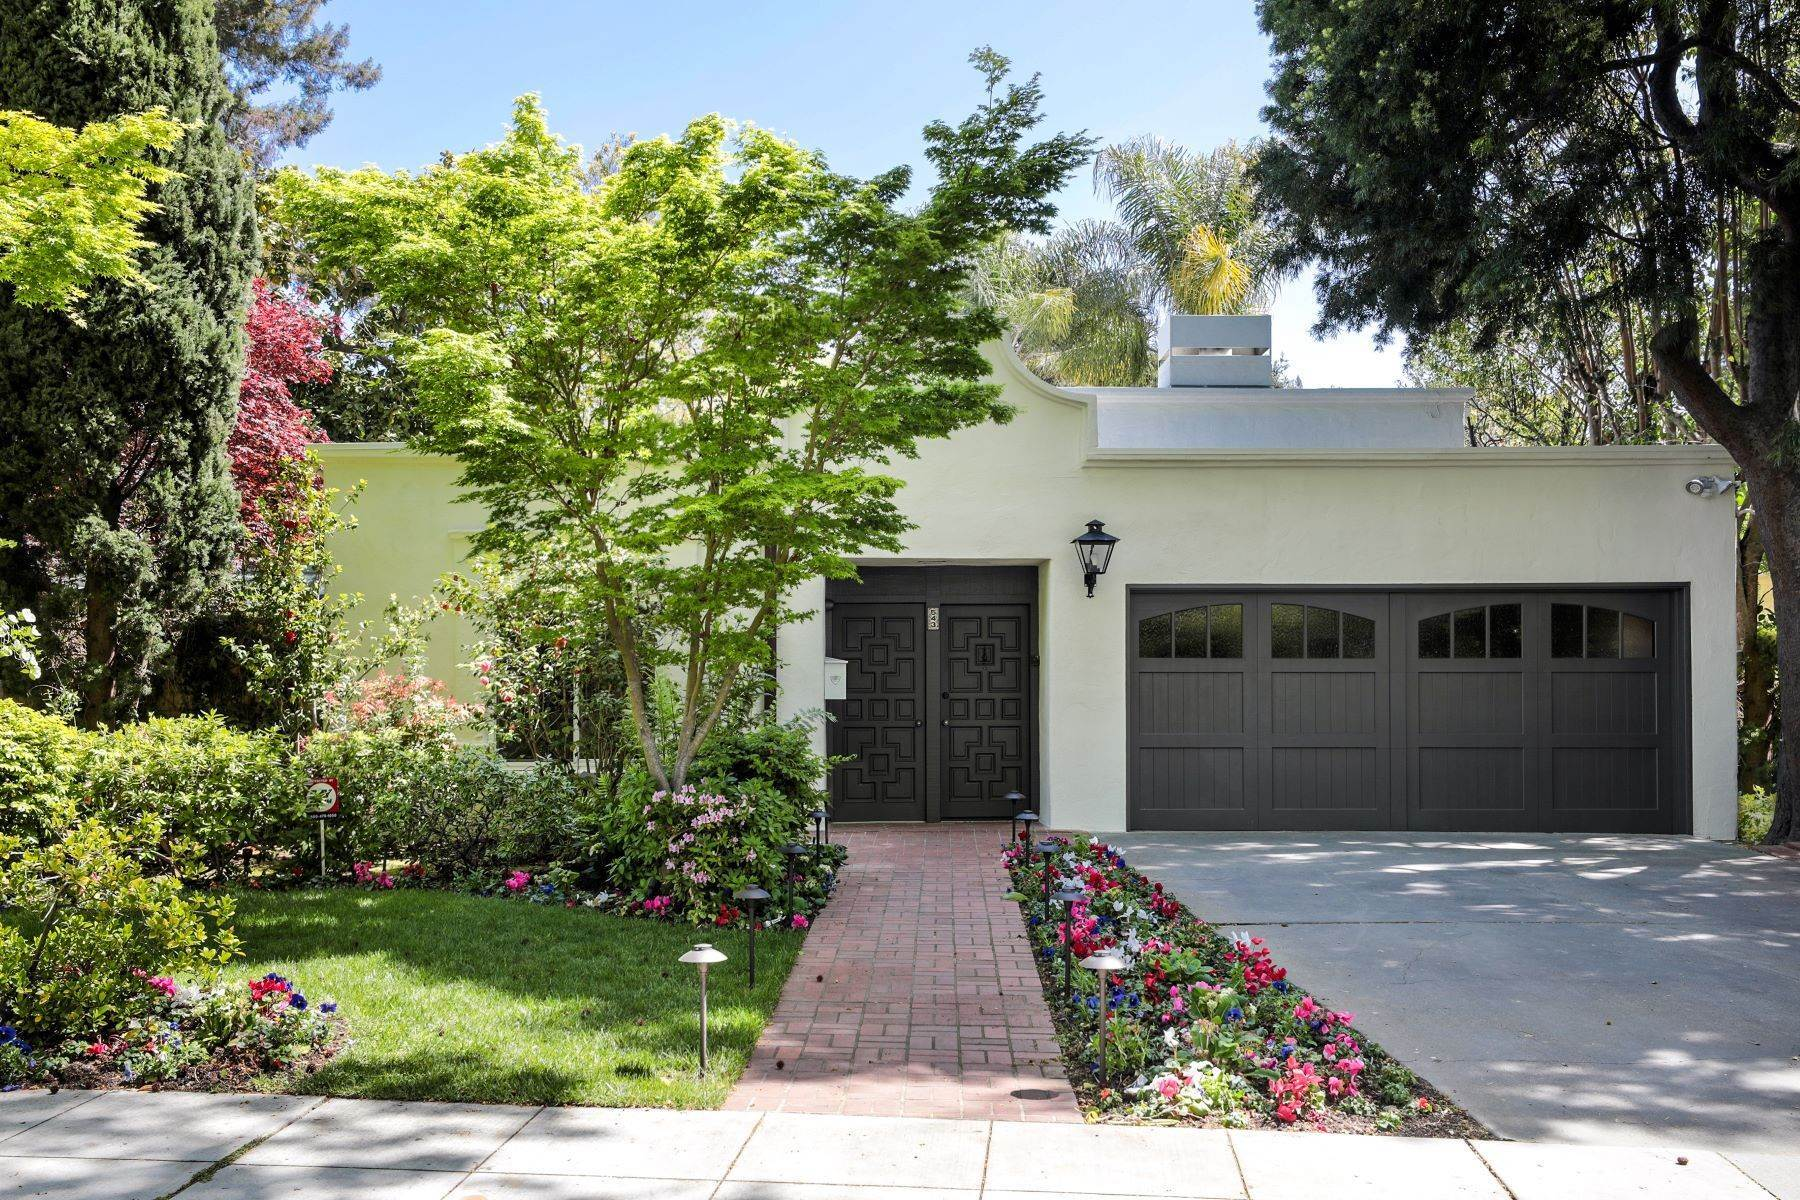 Single Family Homes for Sale at Lovely Mediterranean-Style Home 543 West Crescent Drive Palo Alto, California 94301 United States